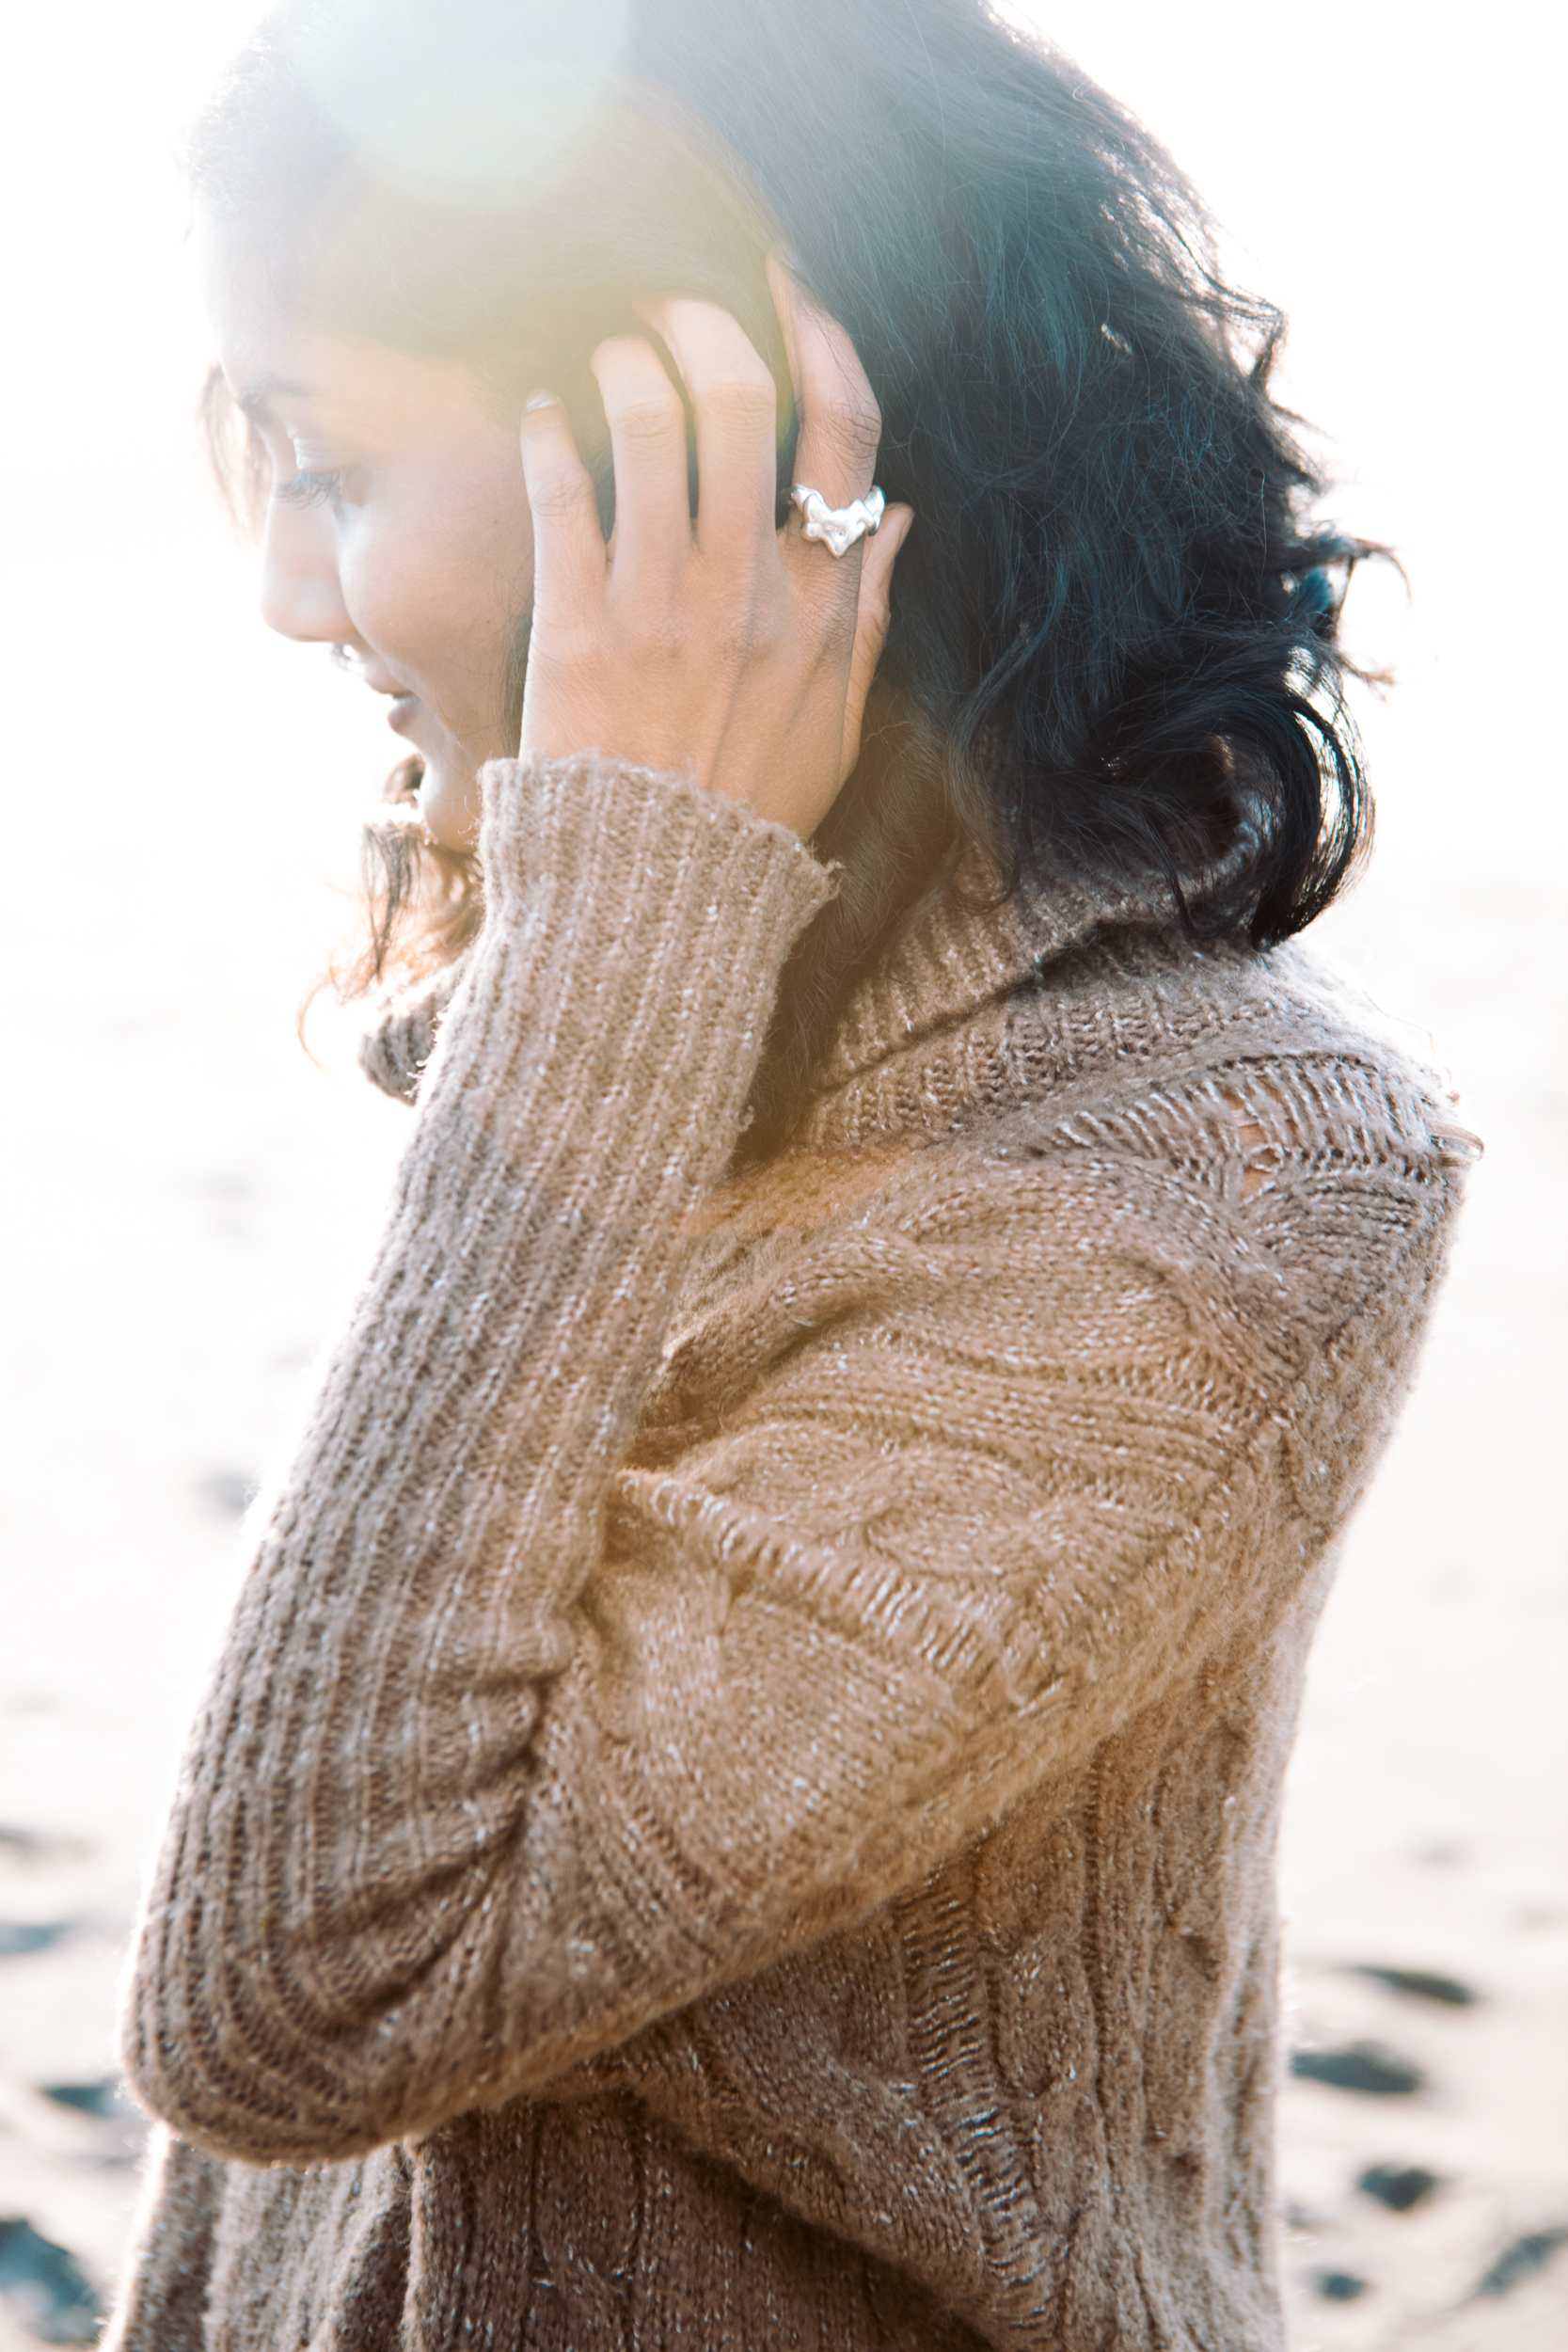 Shilpi wearing the OL  Alex Ring